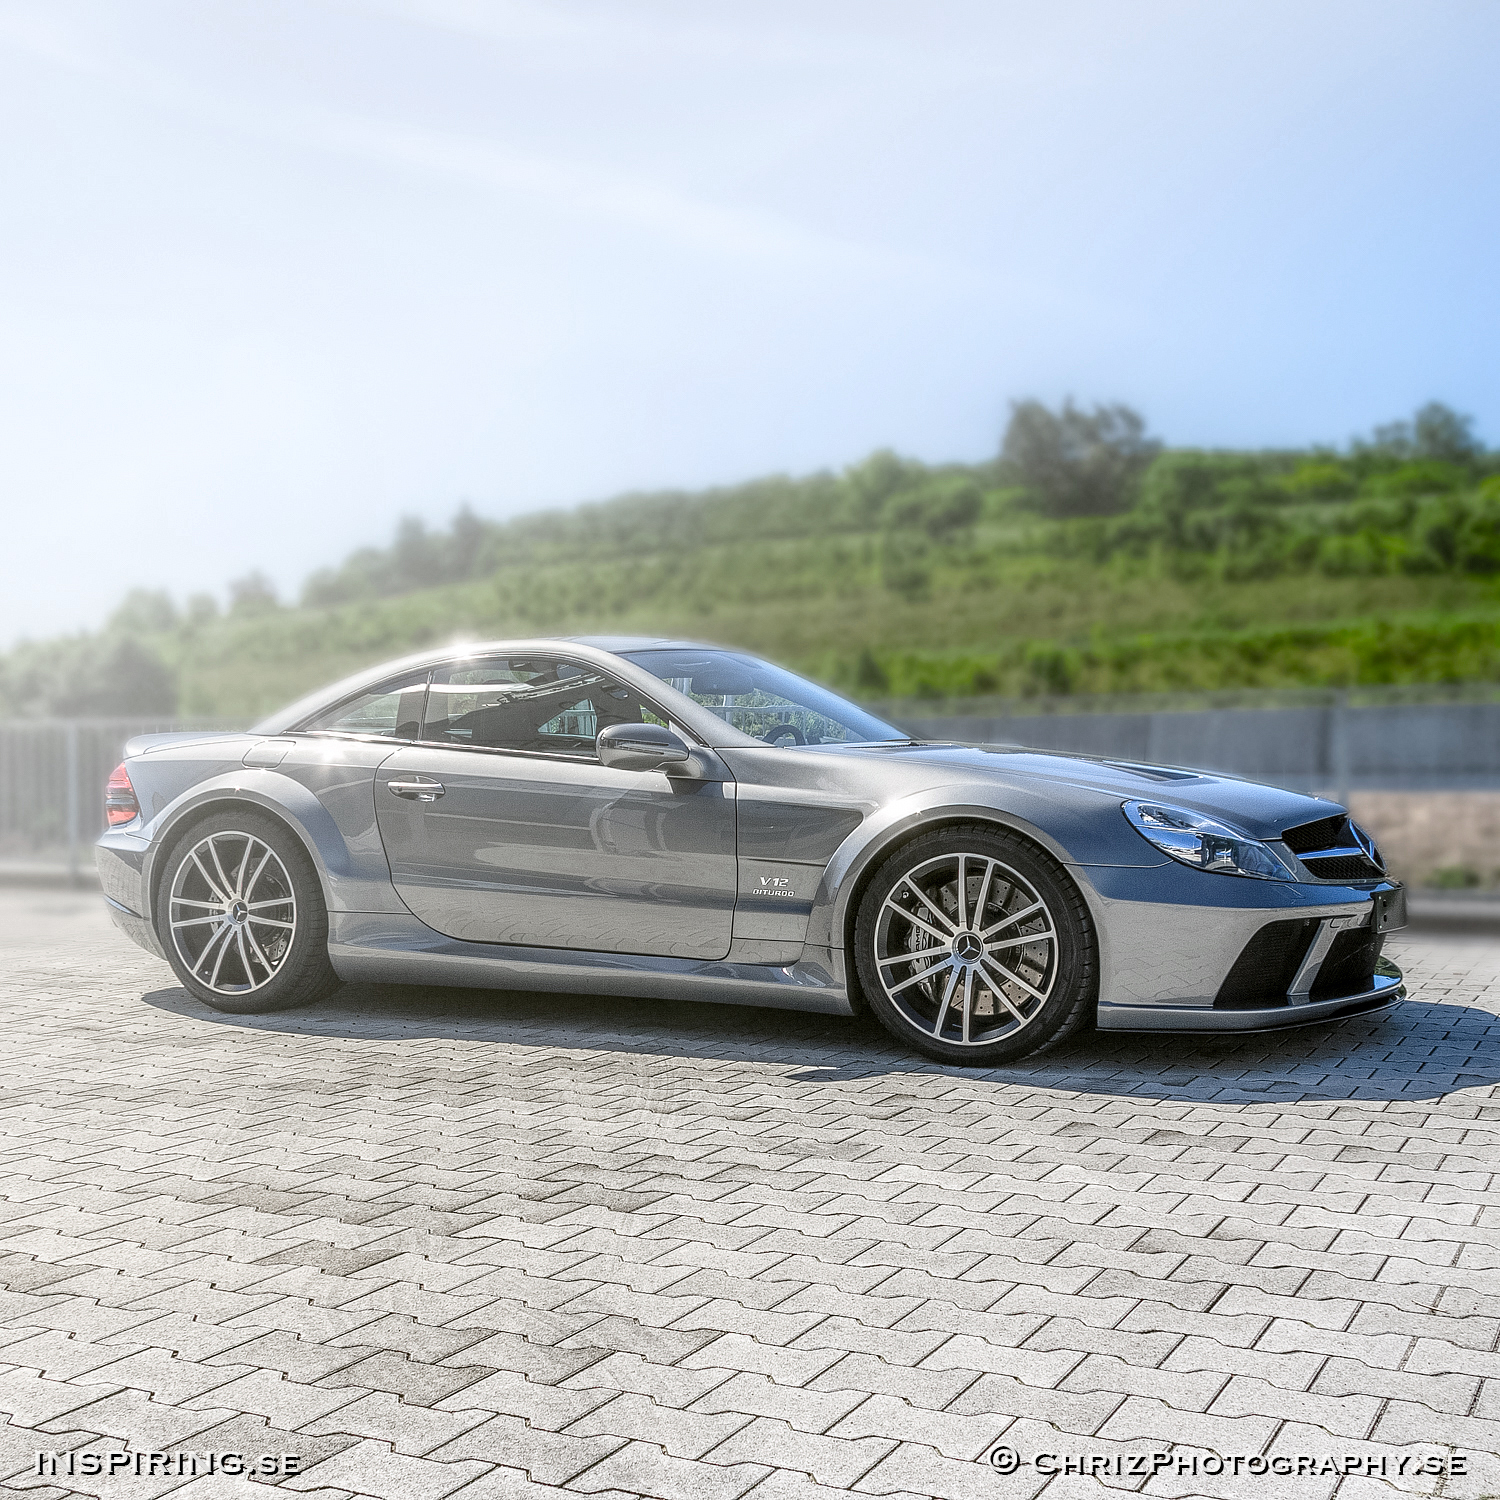 Inspiring.se_OUTTHERE_copyright_ChrizPhotography.se_628_Mercedes_SL65_BlackSeries.jpg